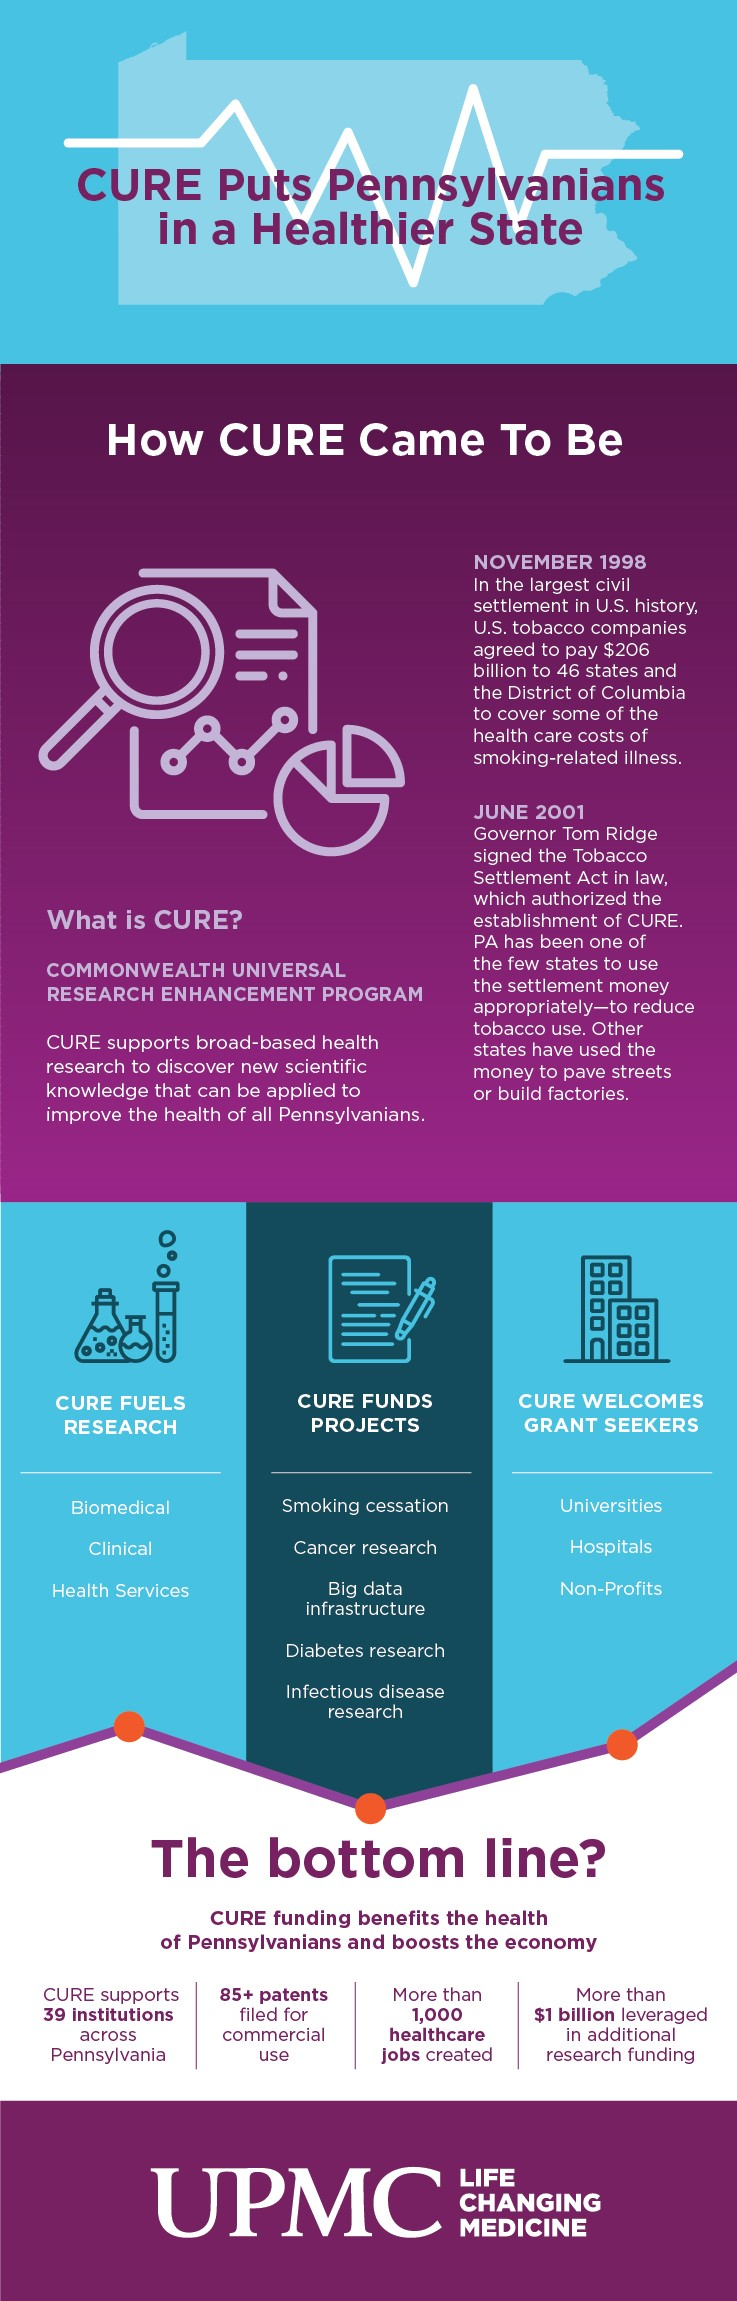 Learn more about CURE in Pennsylvania.